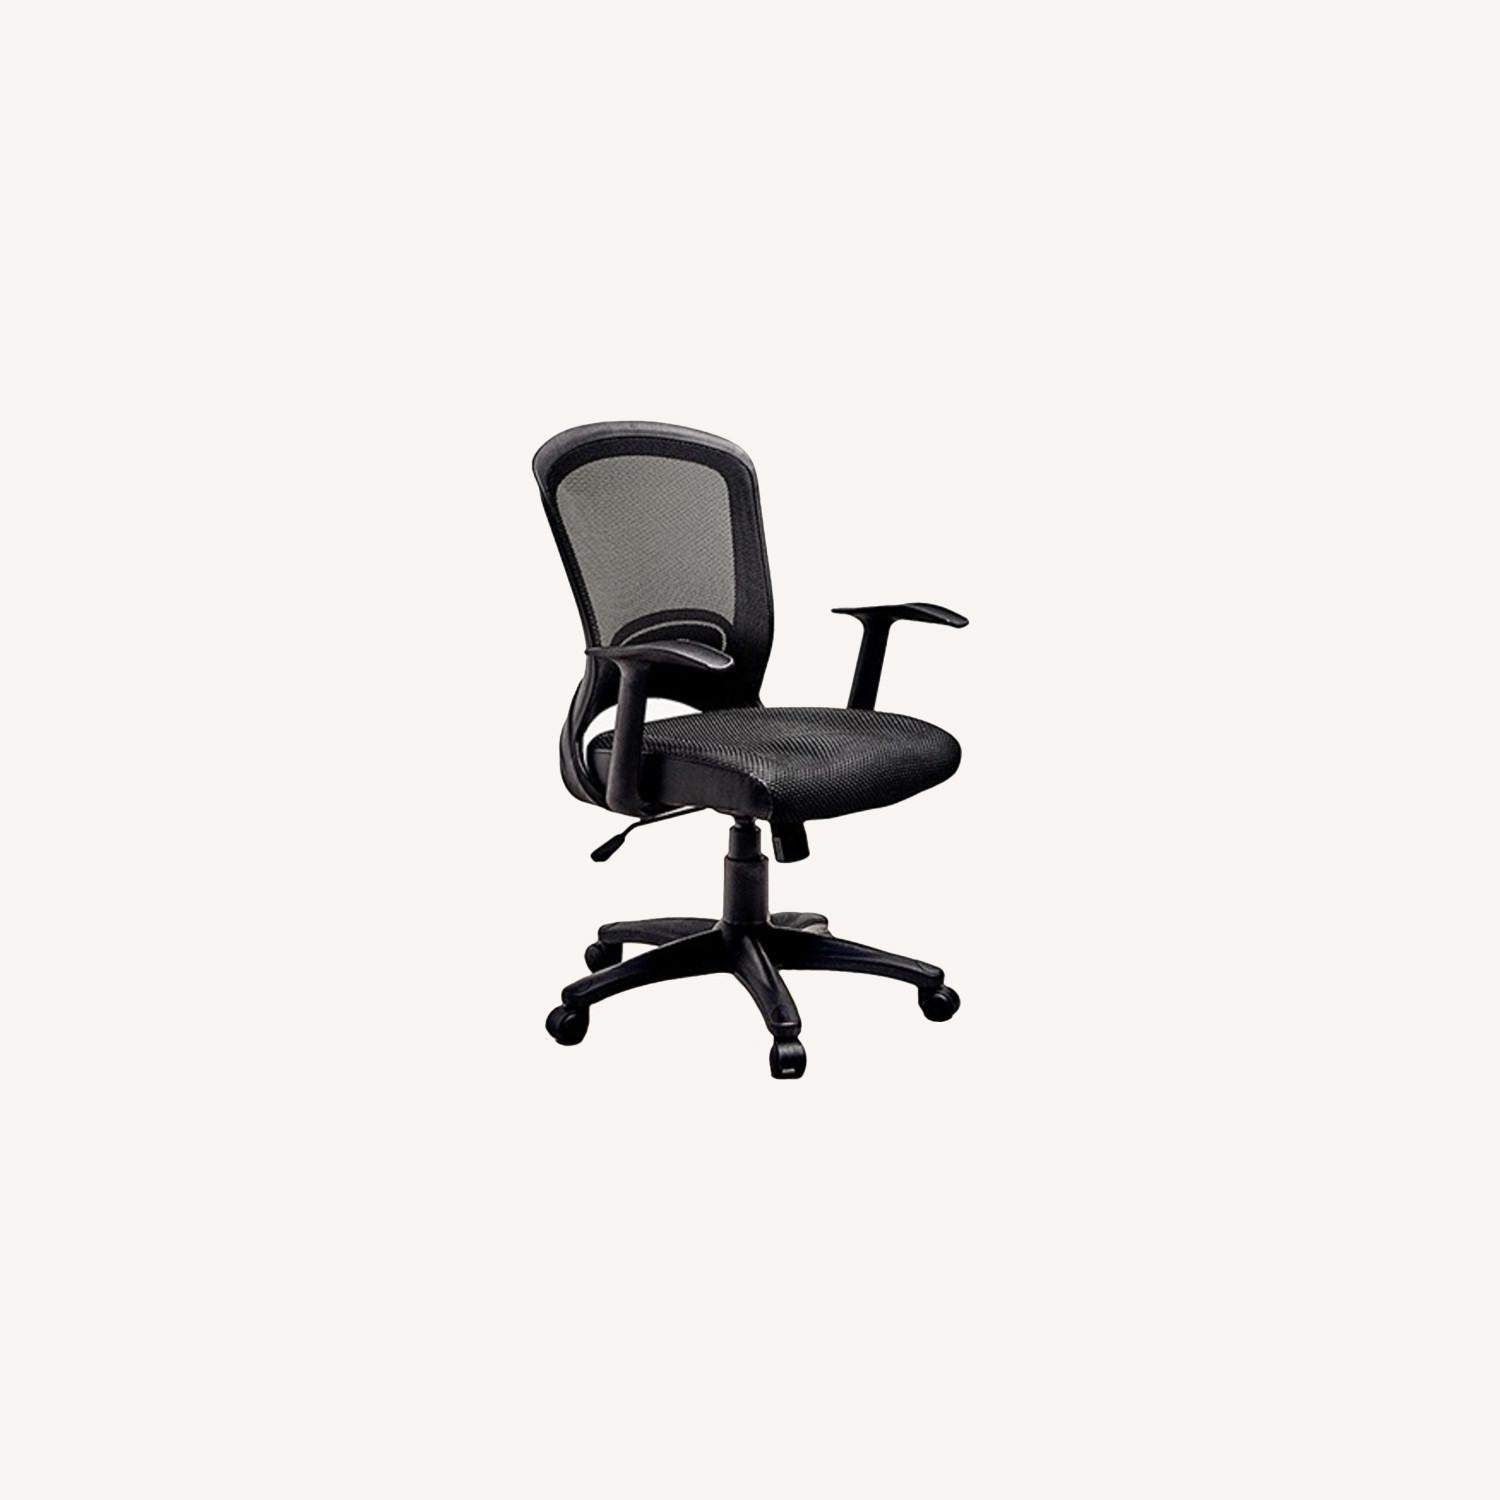 Modway Whistler Desk Chair - image-0